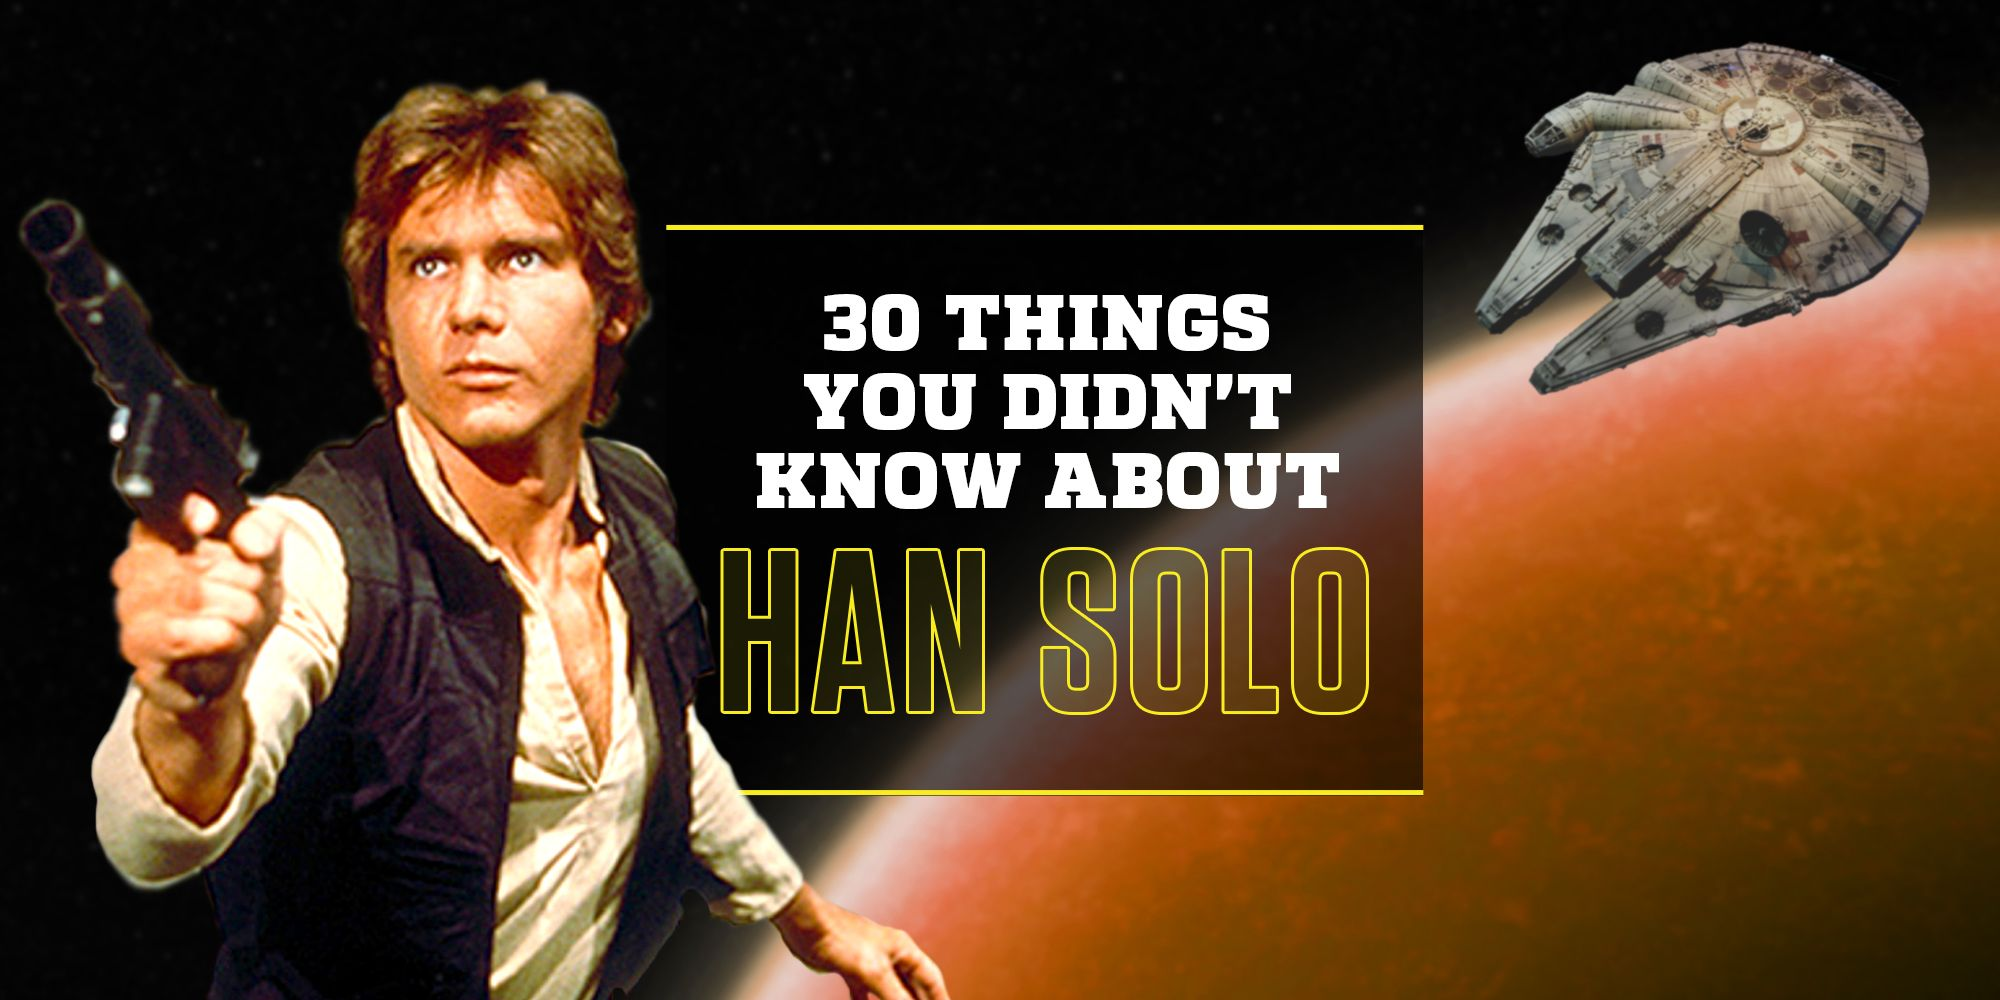 Han Solo Fun Facts - Who Is Han Solo